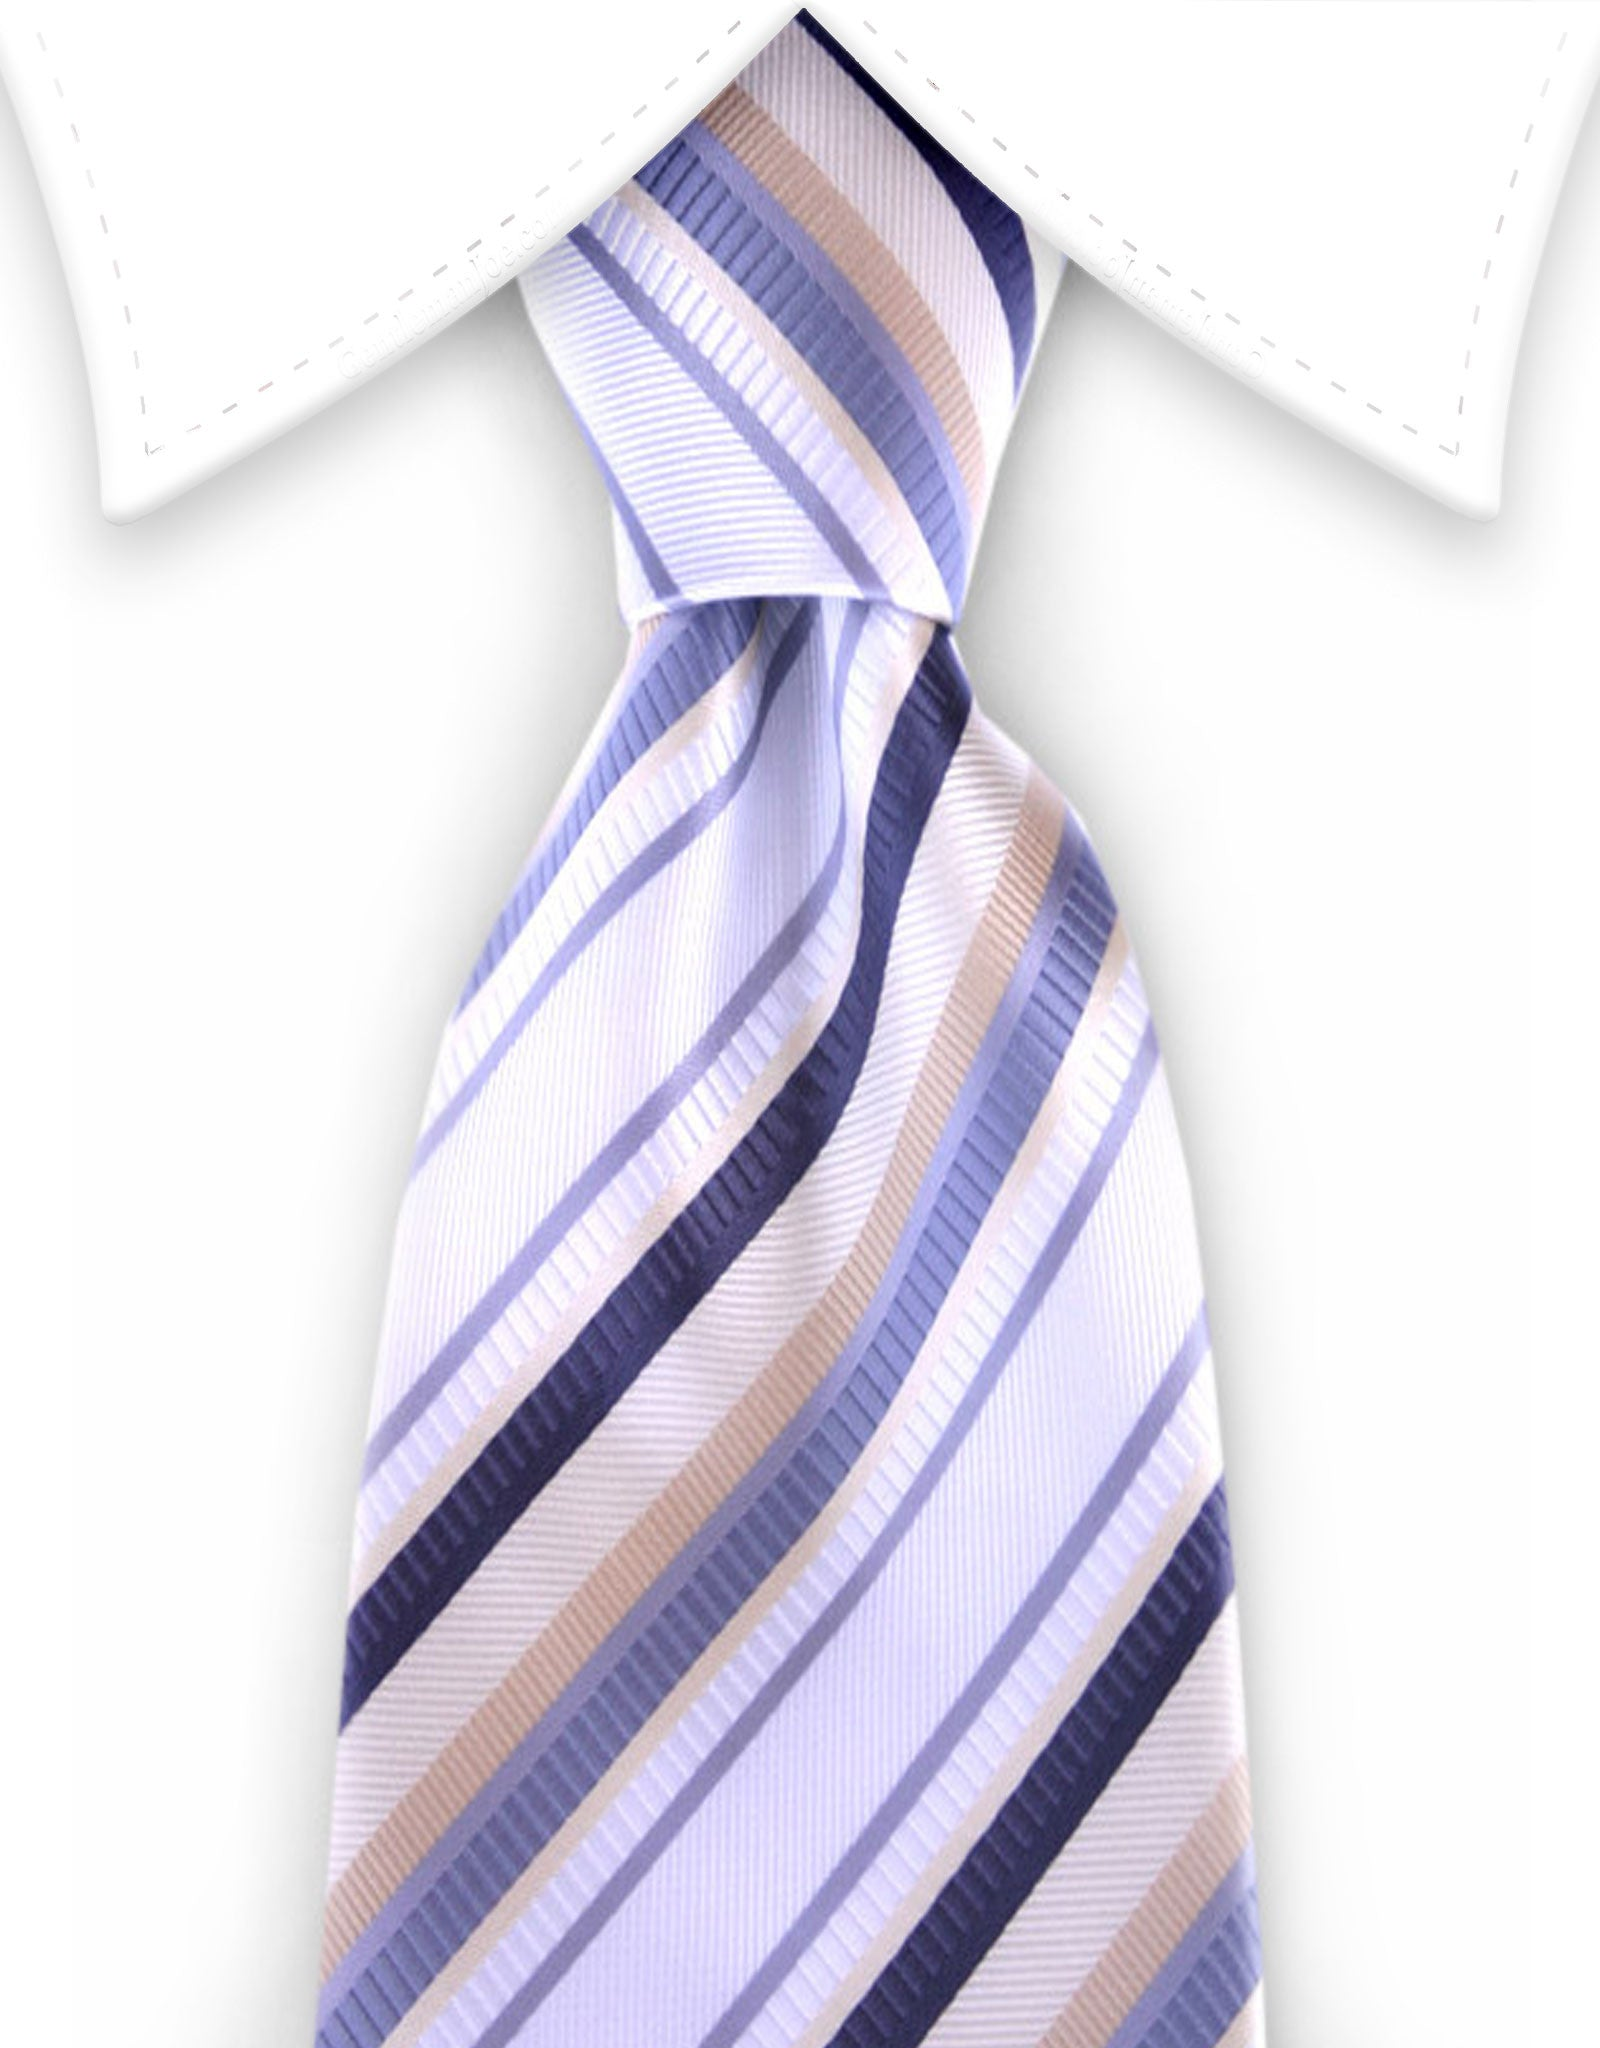 White, Silver, Charcoal & Gold Striped Tie